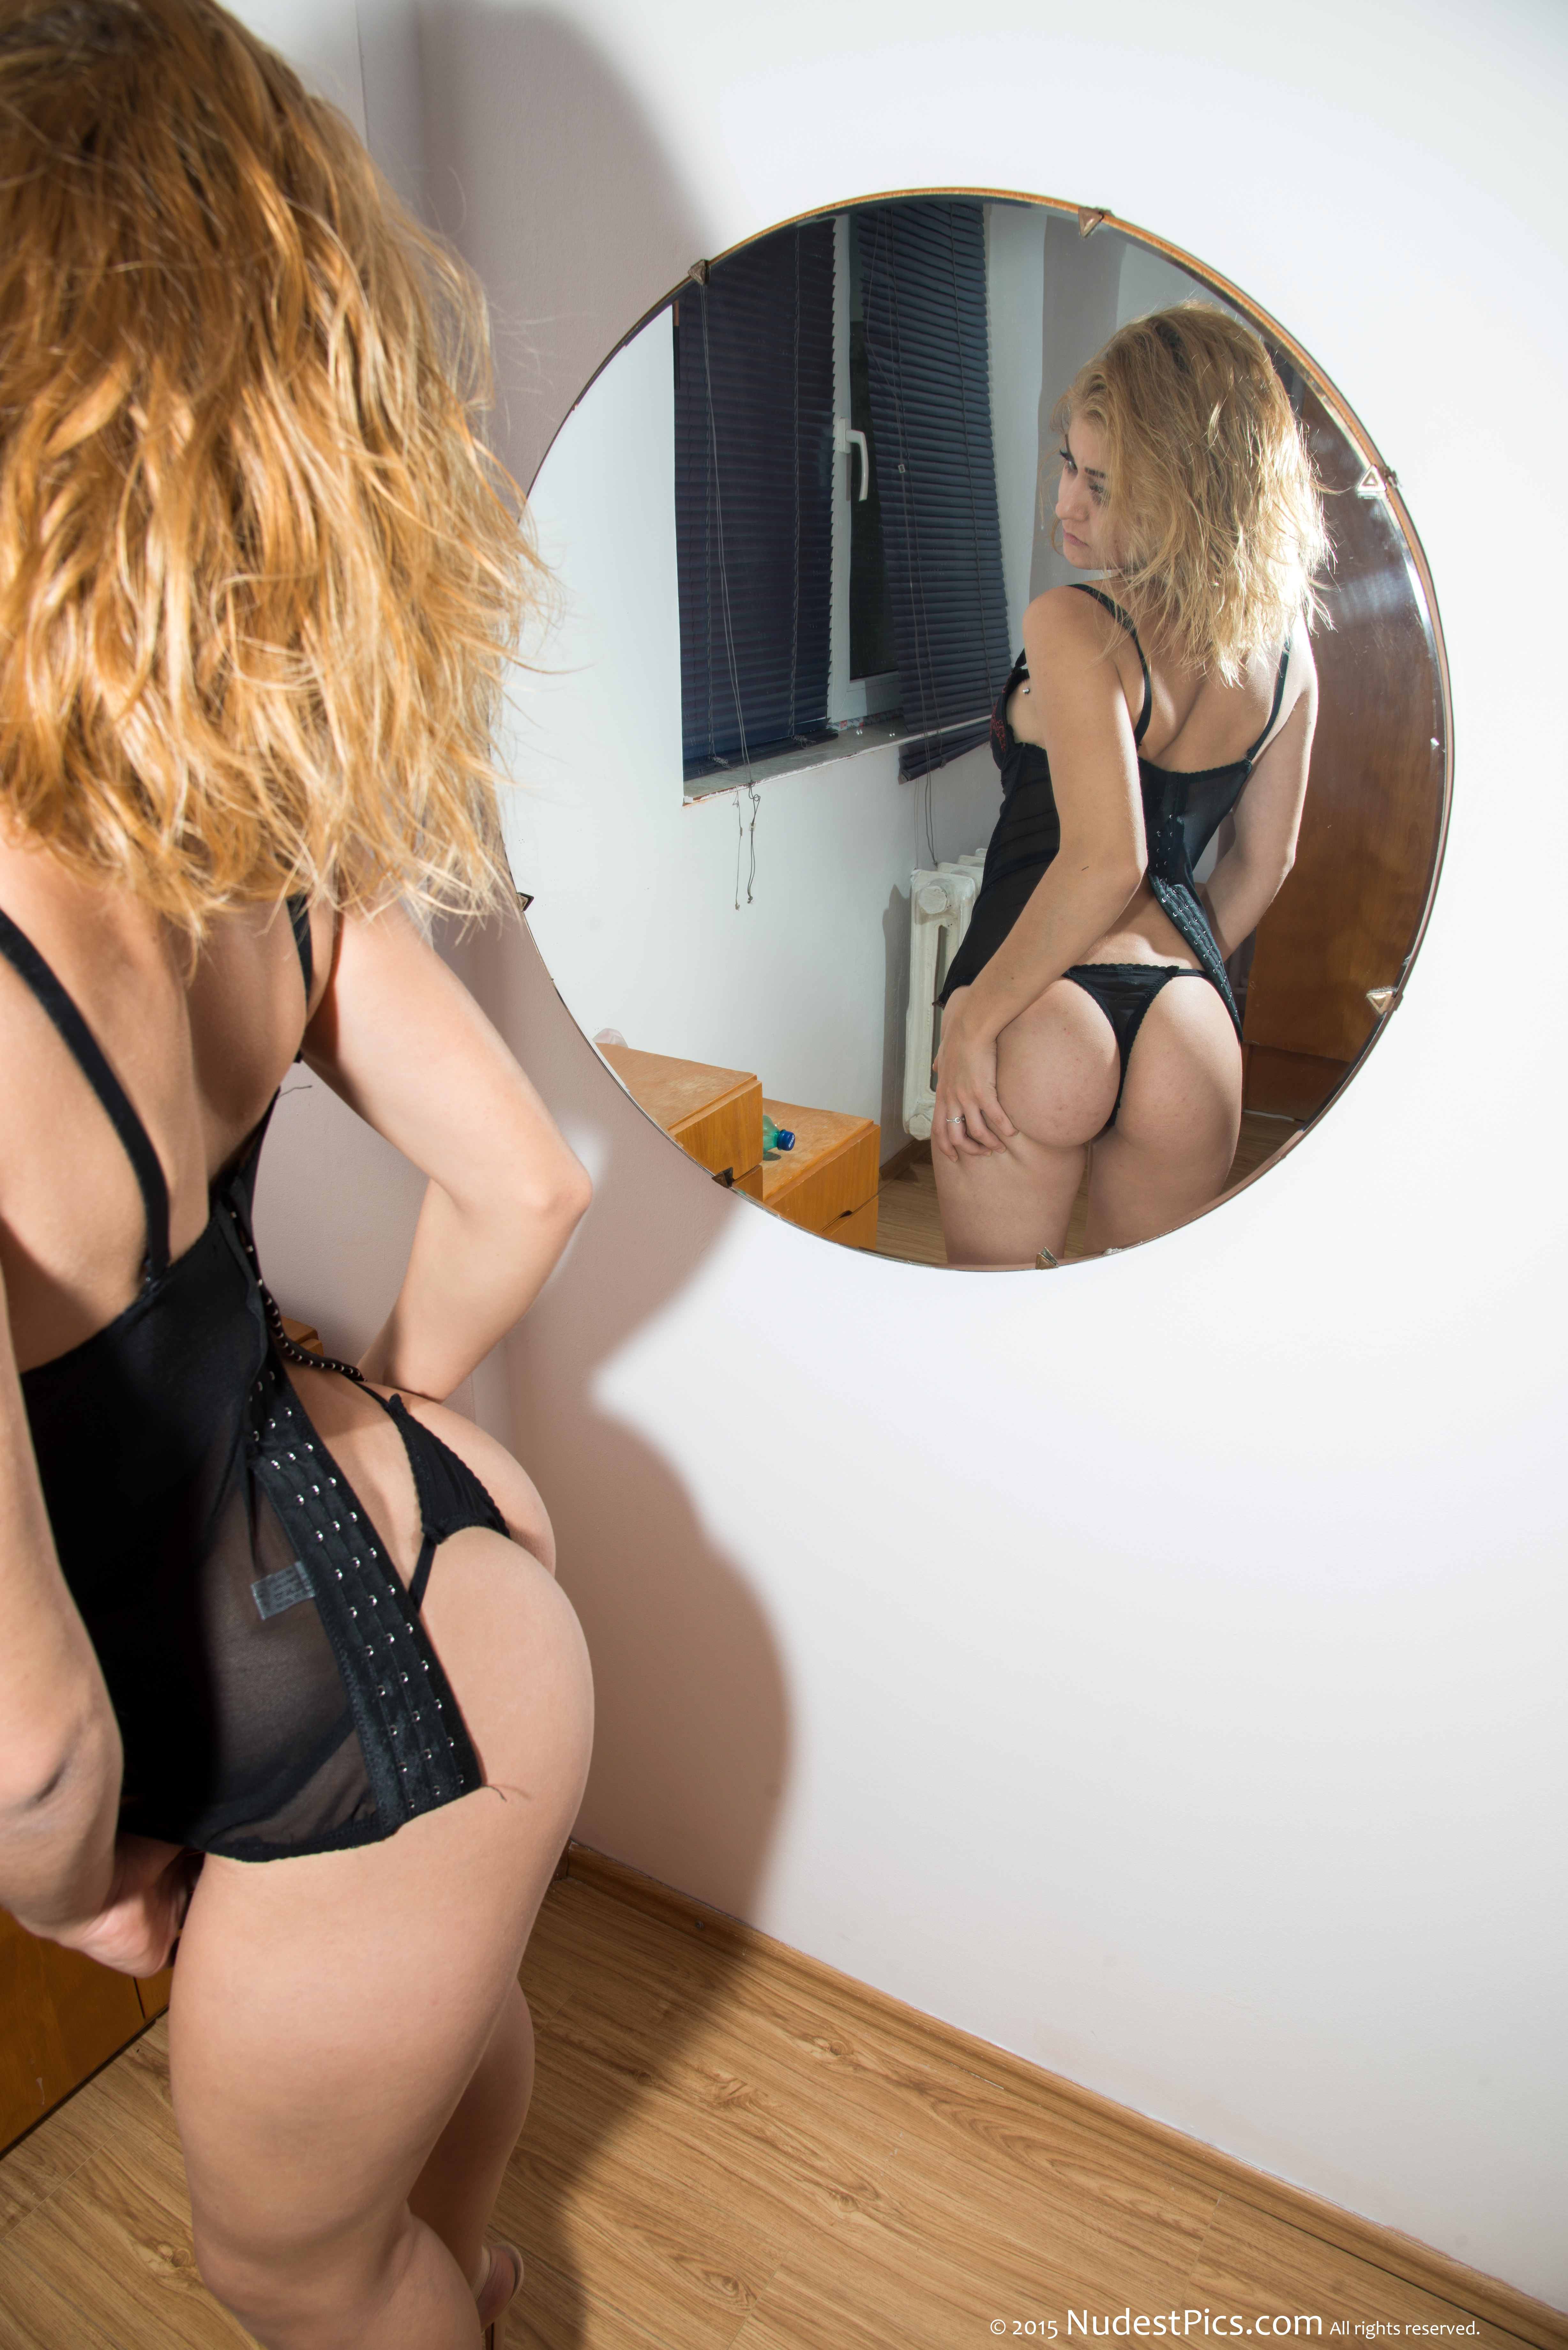 Gorgeous Teen Girl Admiring Her Round Booty with Thong in the Mirror HD